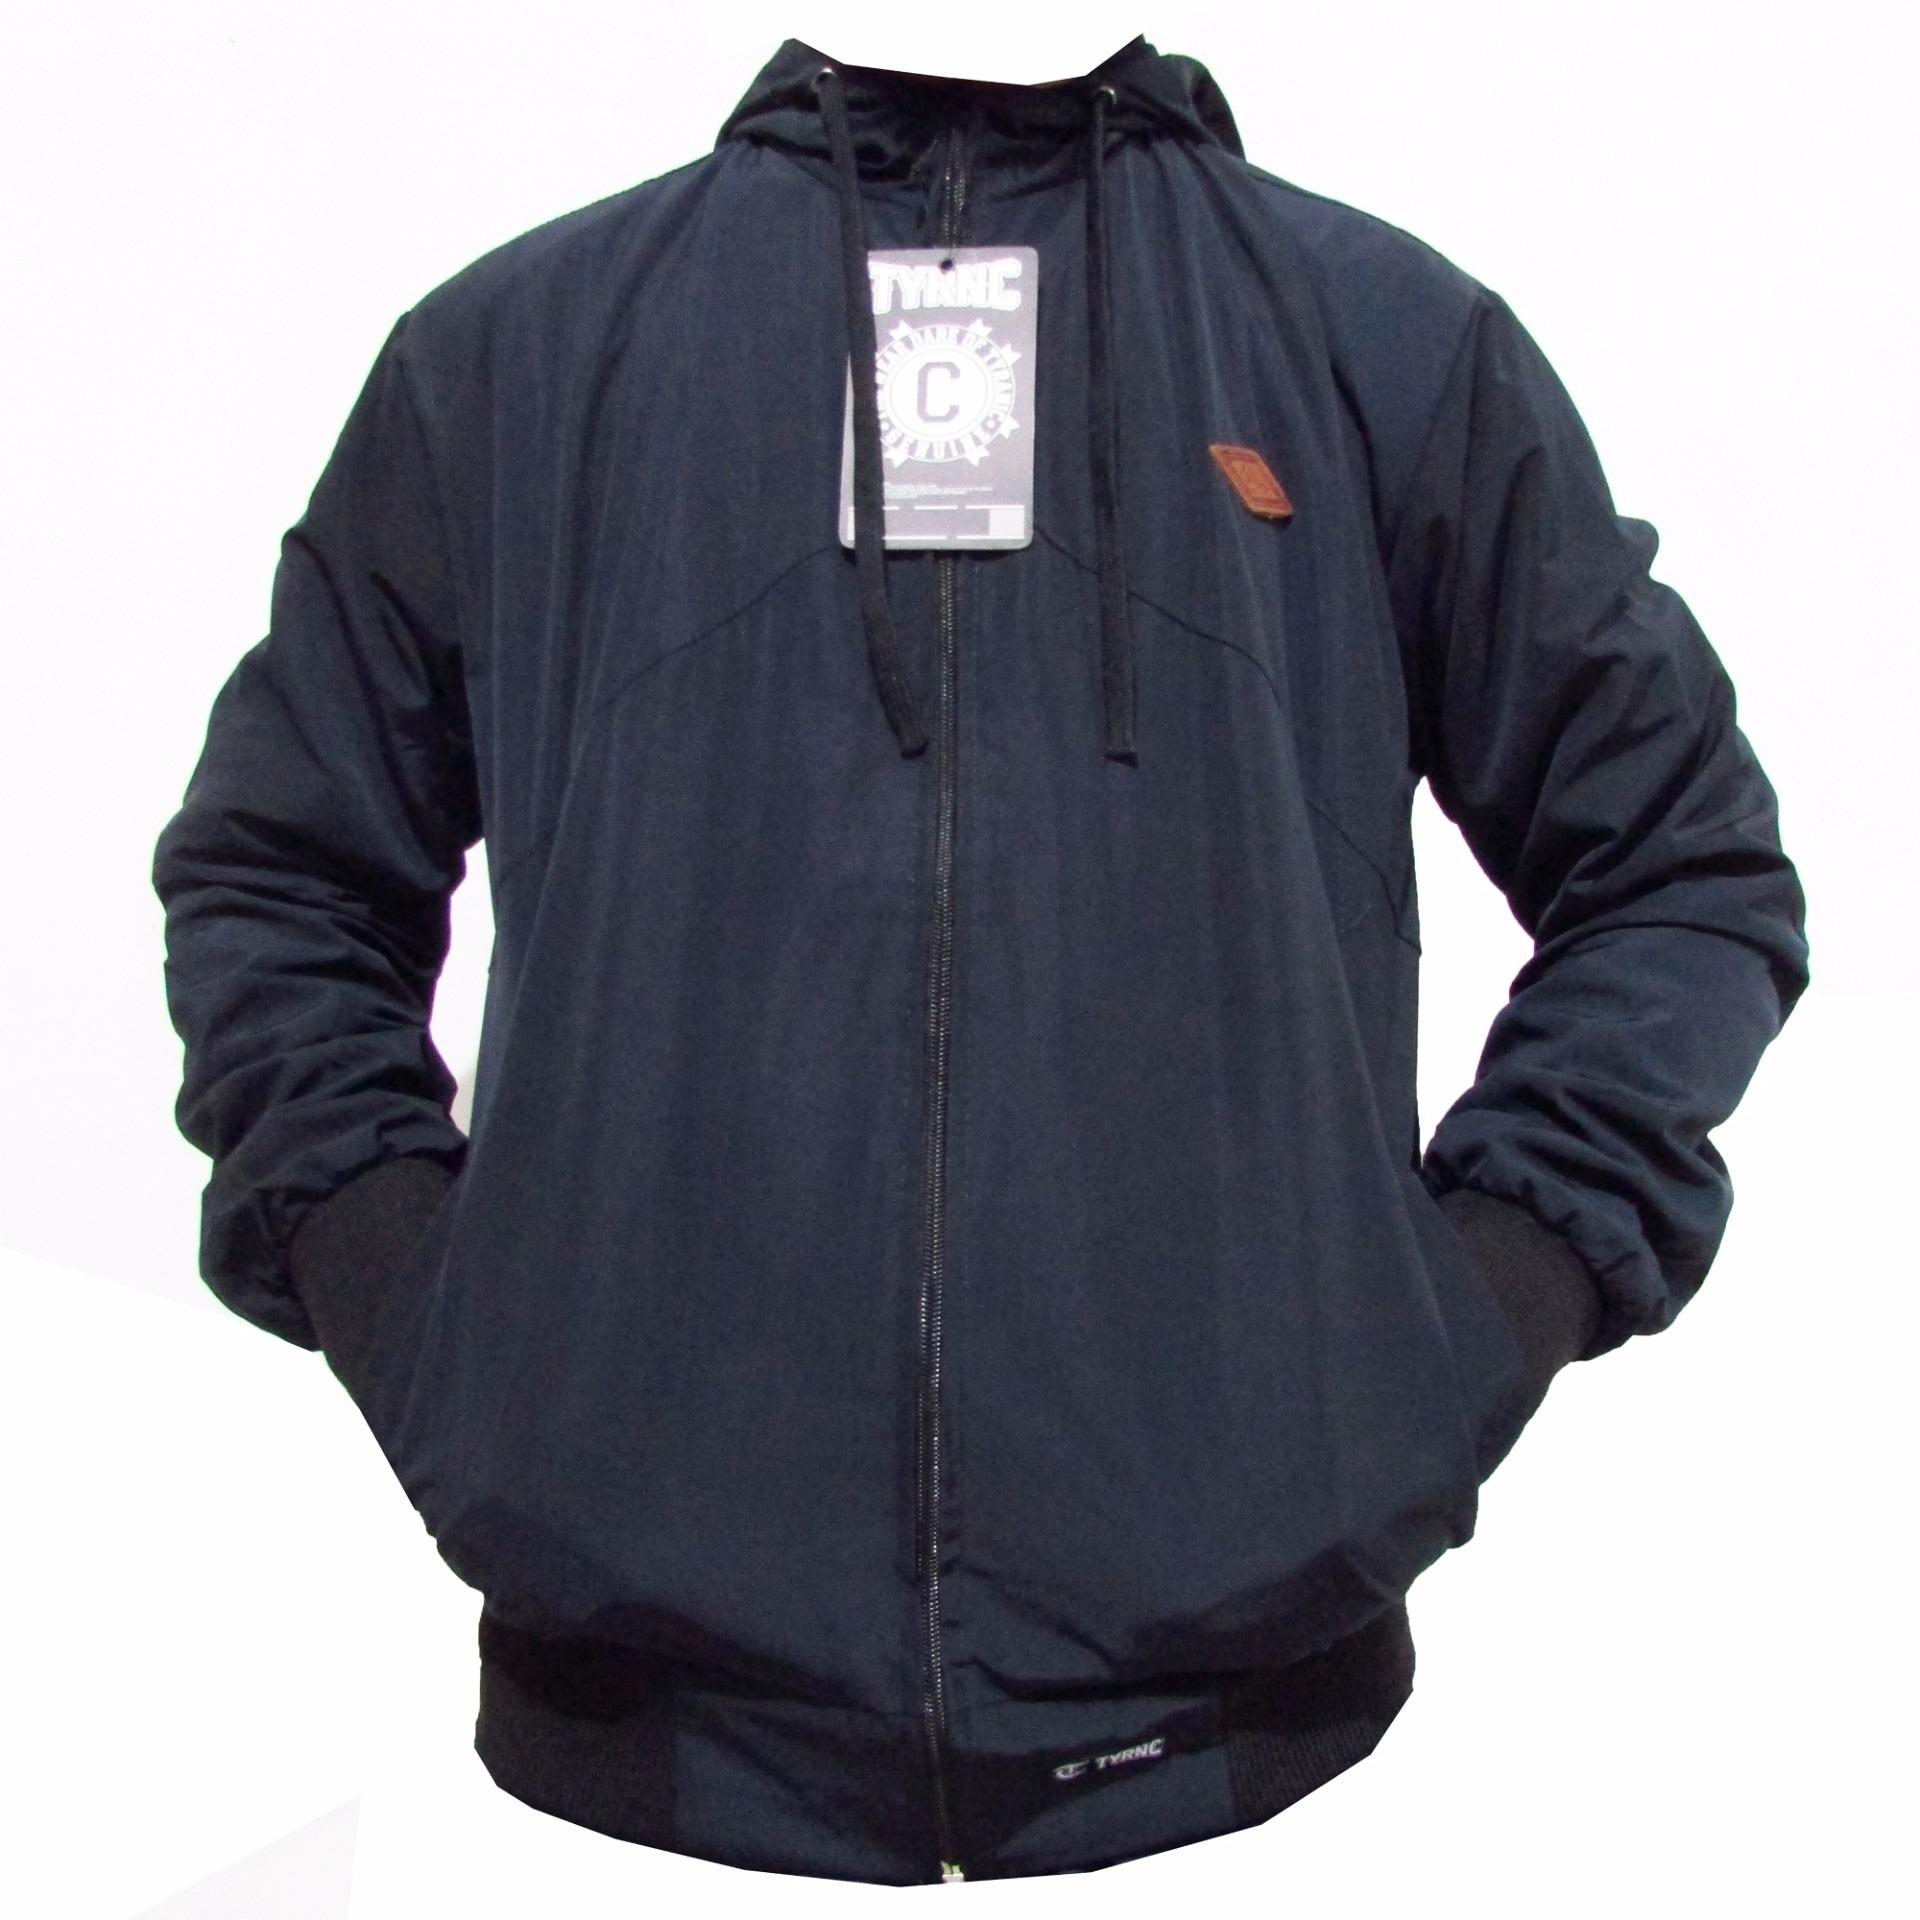 Beli Galaksi Jaket Bomber Rock Rider Tyrnc Promo Spesial Edition Exclusive Nyicil